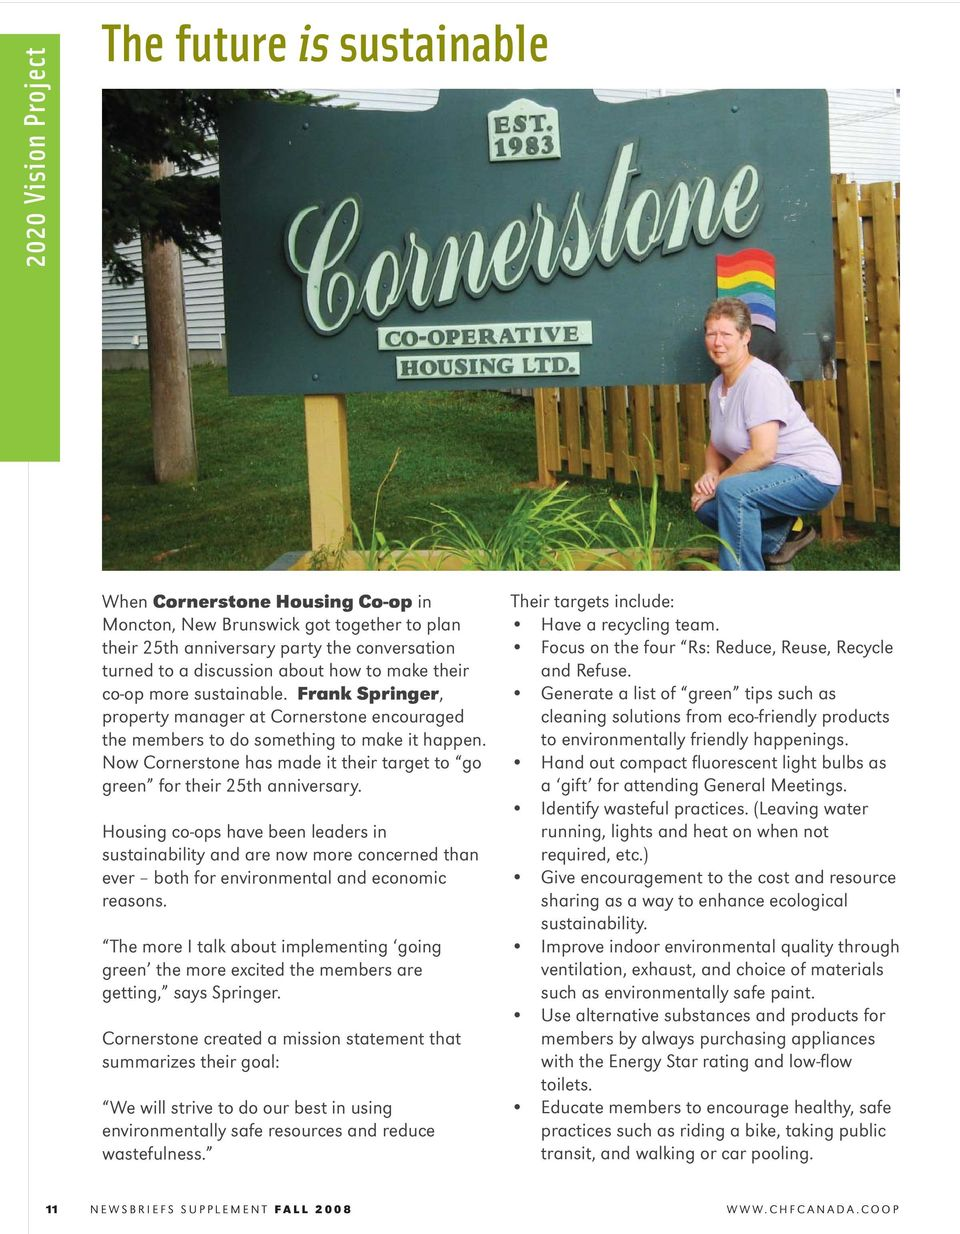 Now Cornerstone has made it their target to go green for their 25th anniversary.